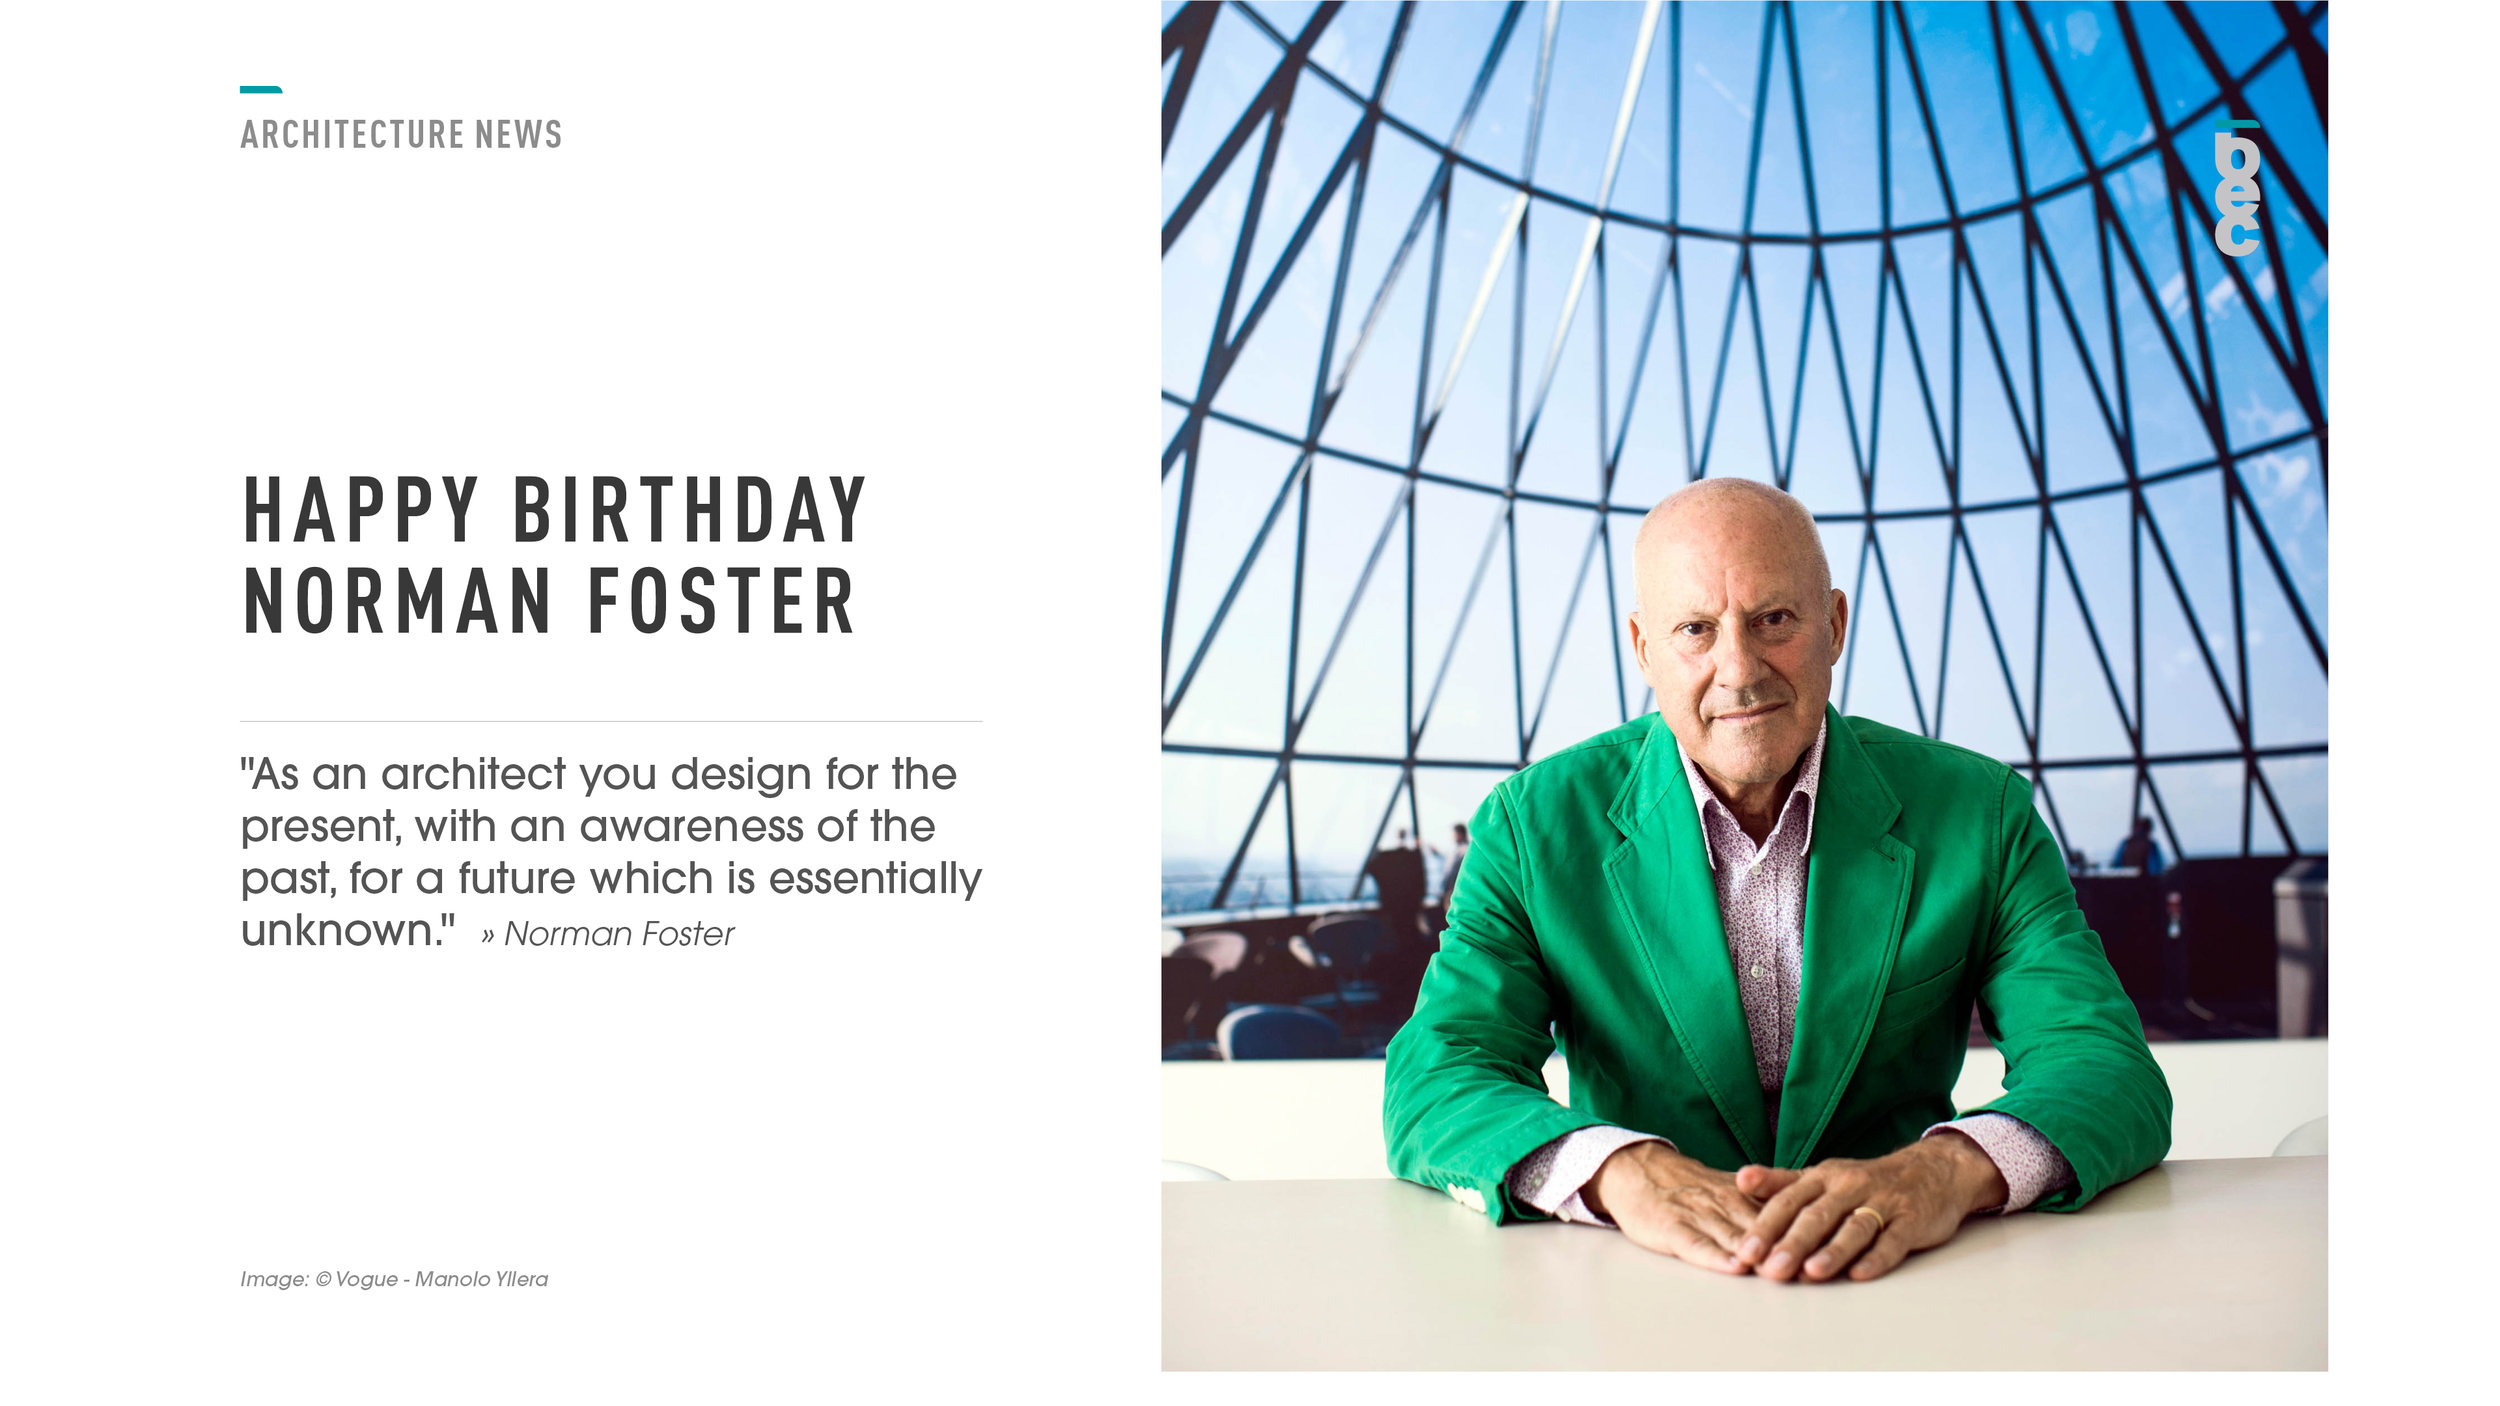 2_AR-norman-foster-birthday.jpg